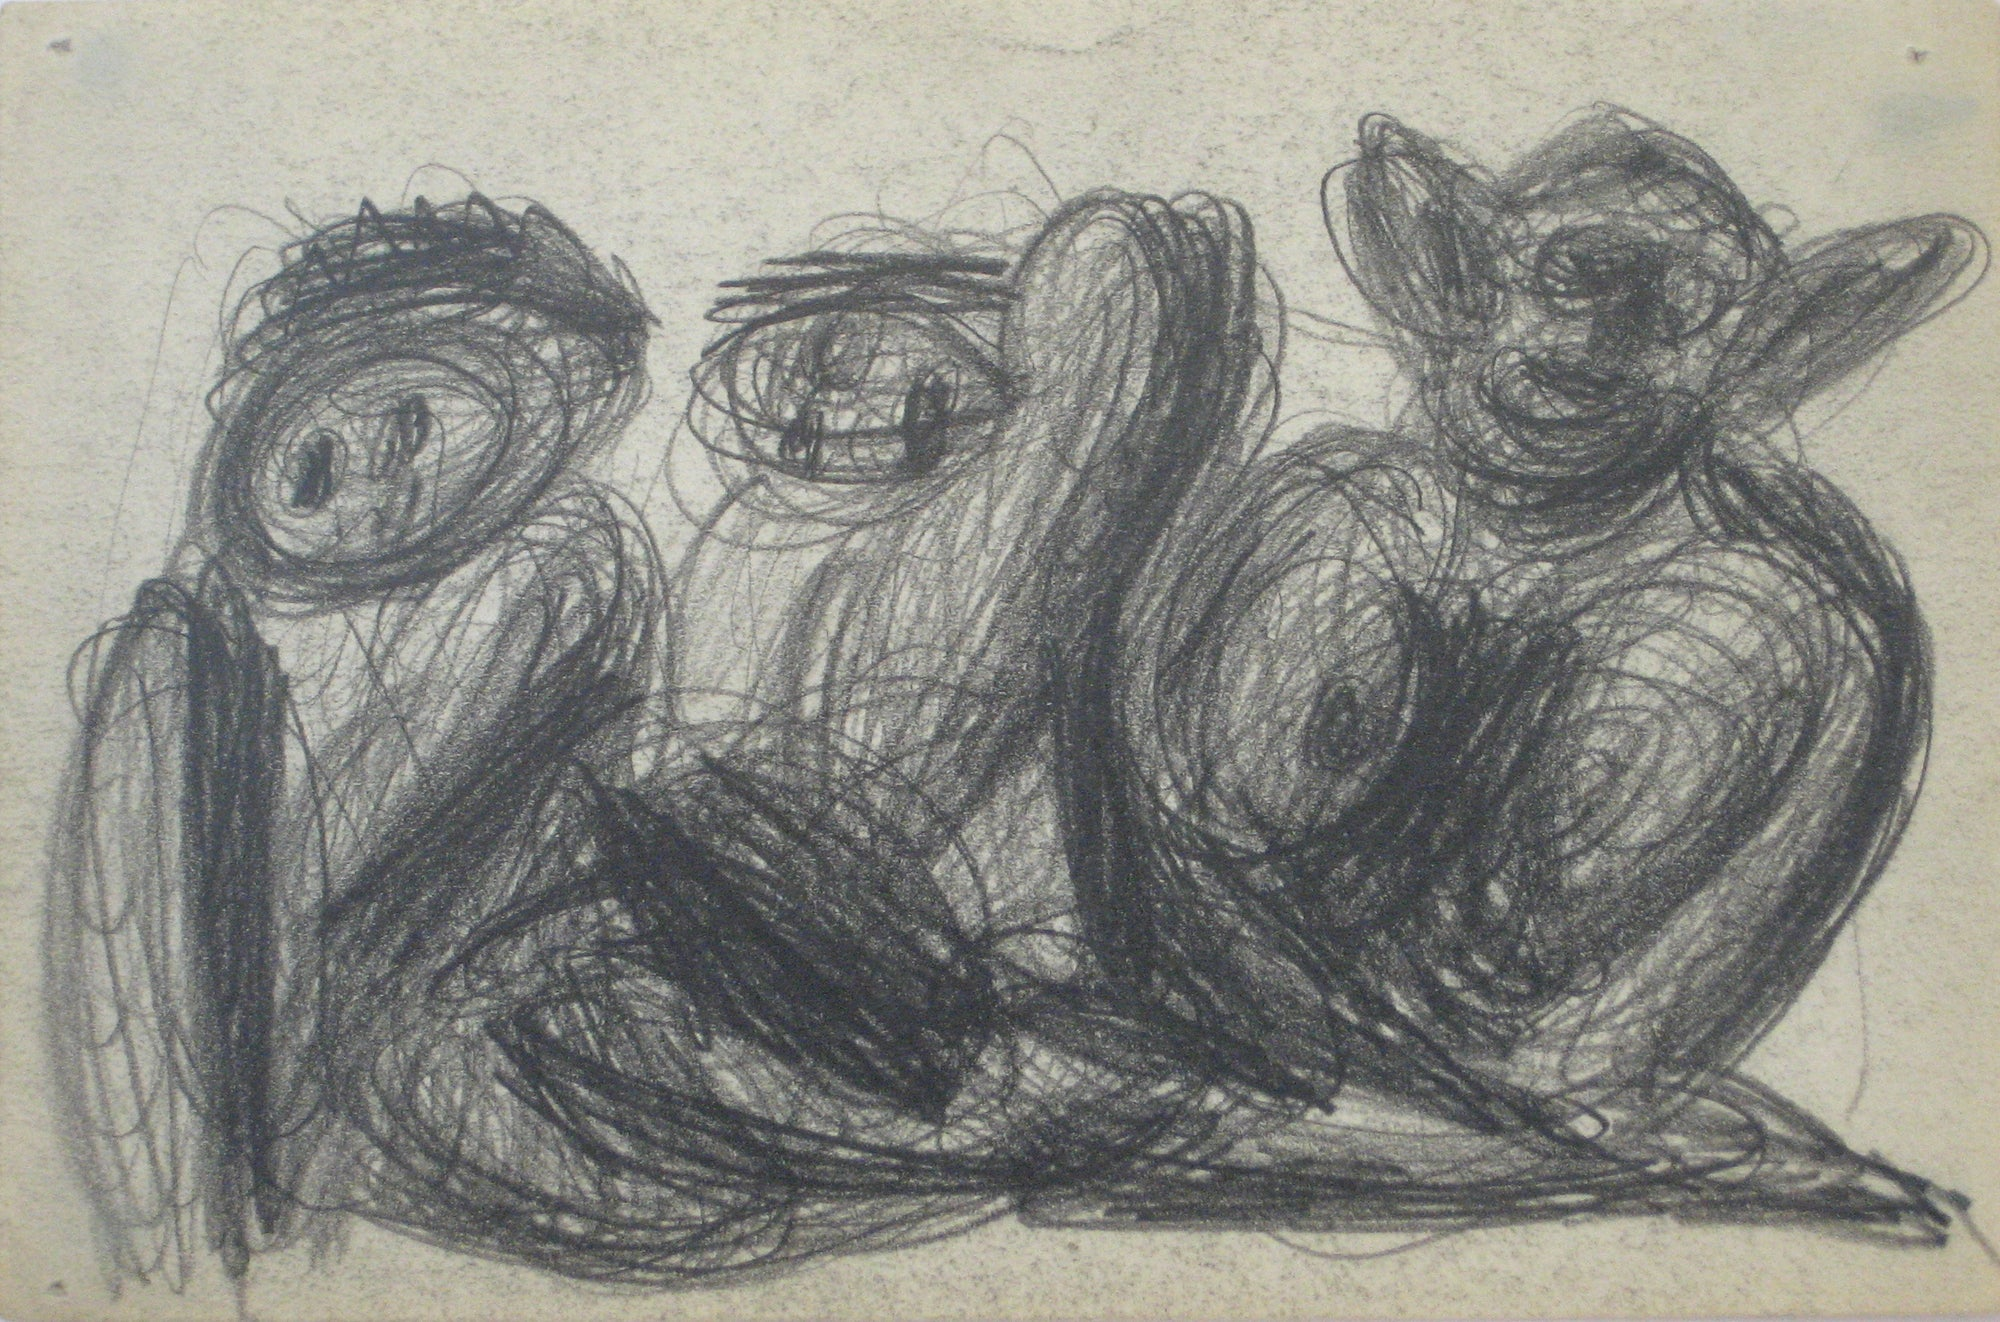 Swirled Abstract Graphite Figures <br>Early-Mid 20th Century <br><br>#14080